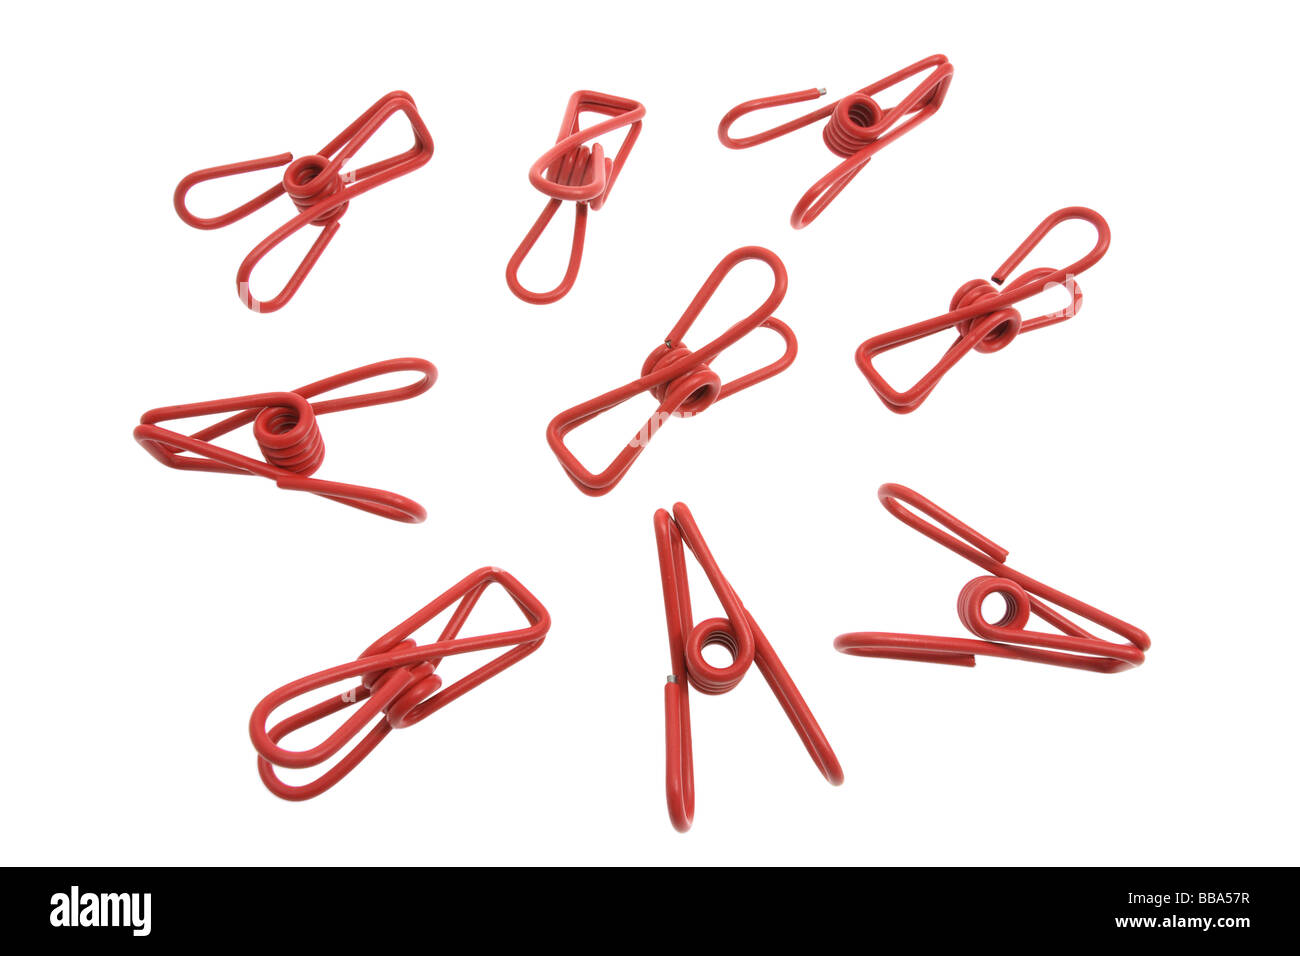 Metal Cothes Pegs - Stock Image